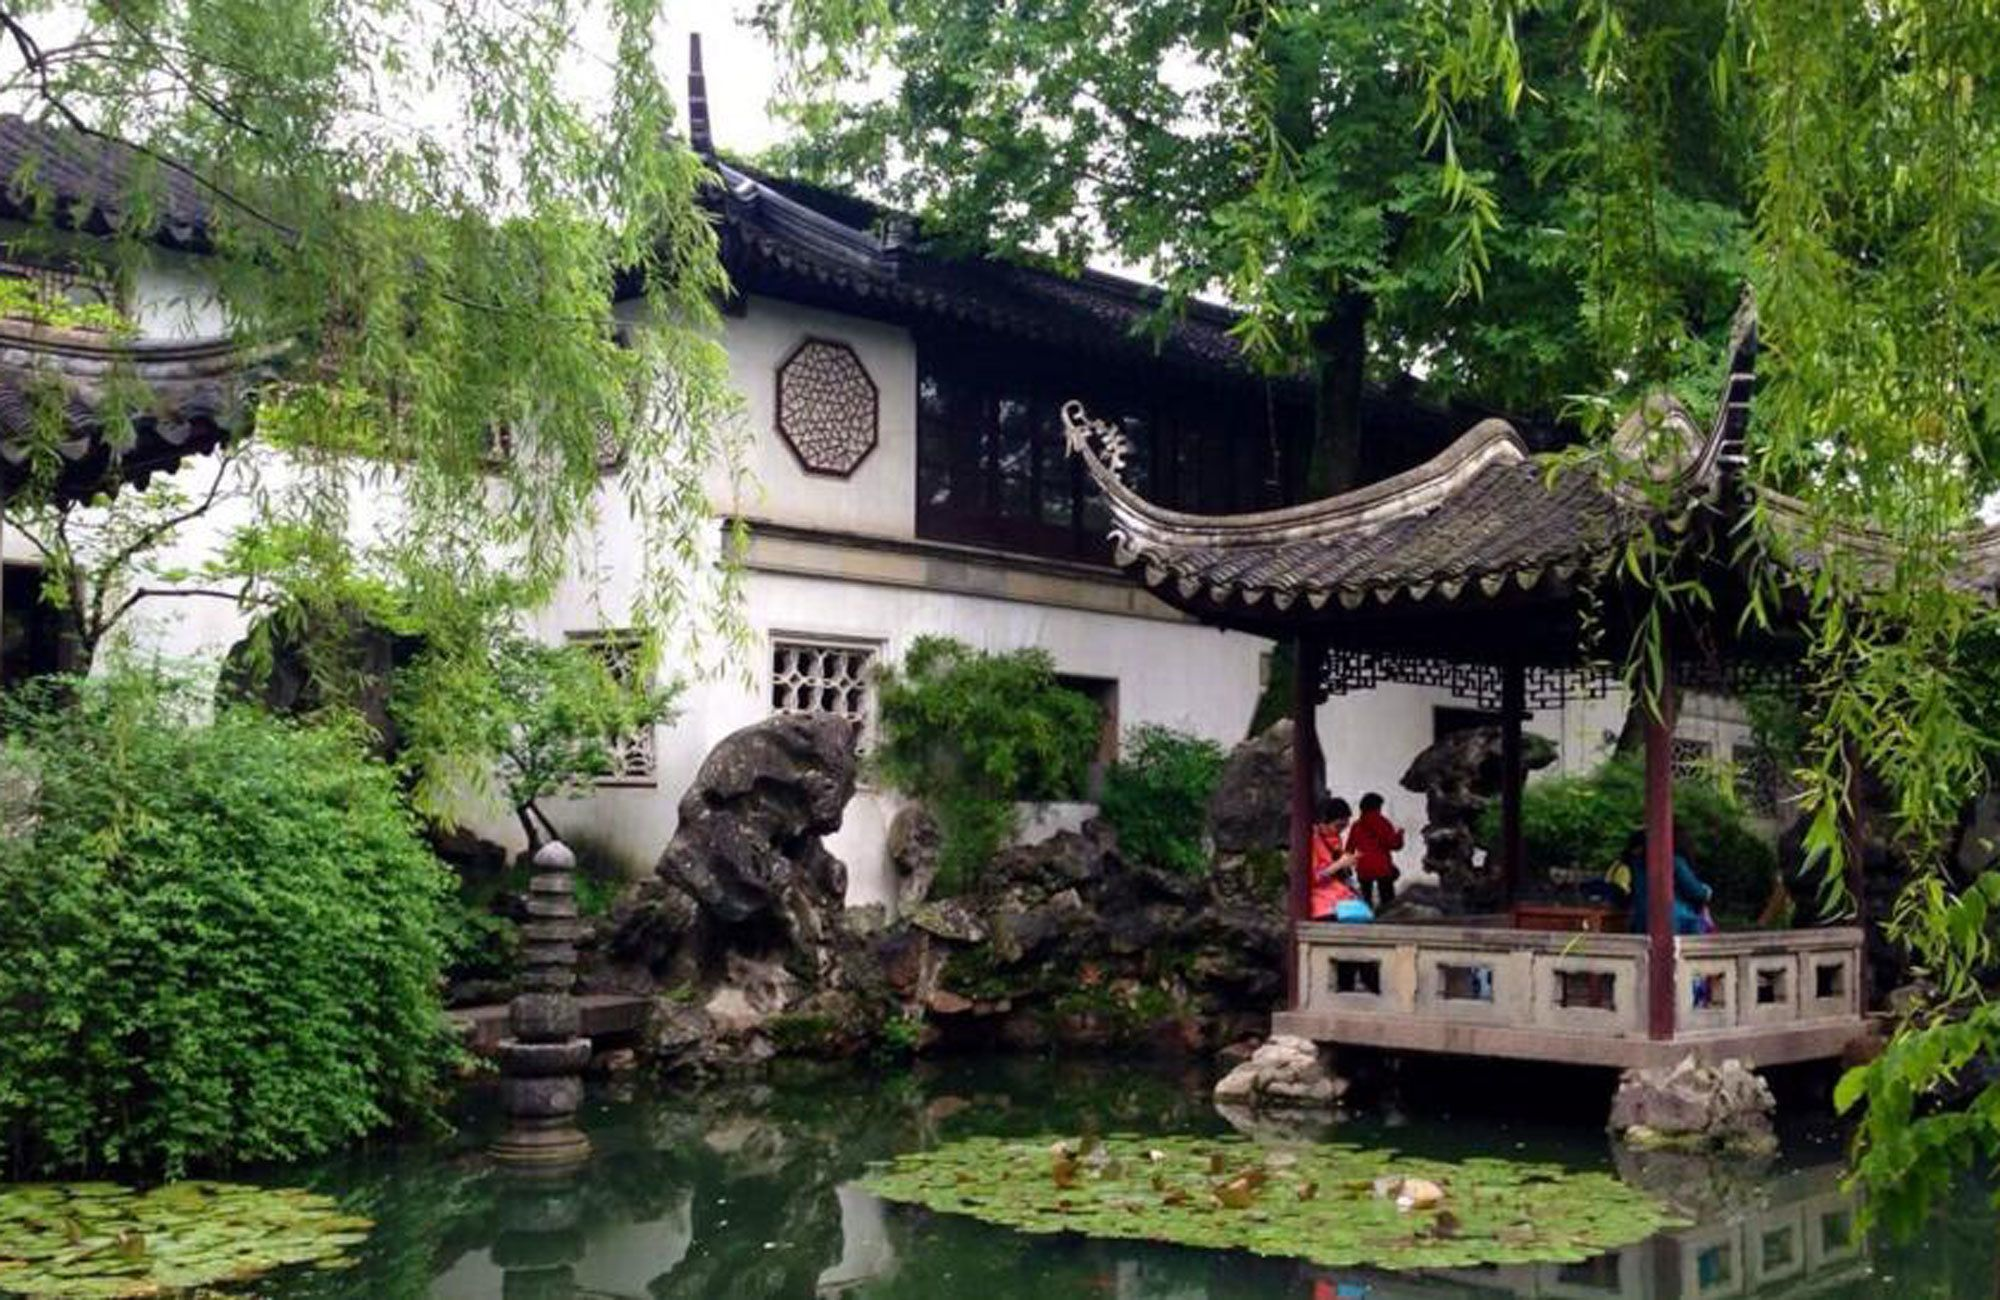 Full Day Private Trip of Suzhou Gardens with Live Commentary